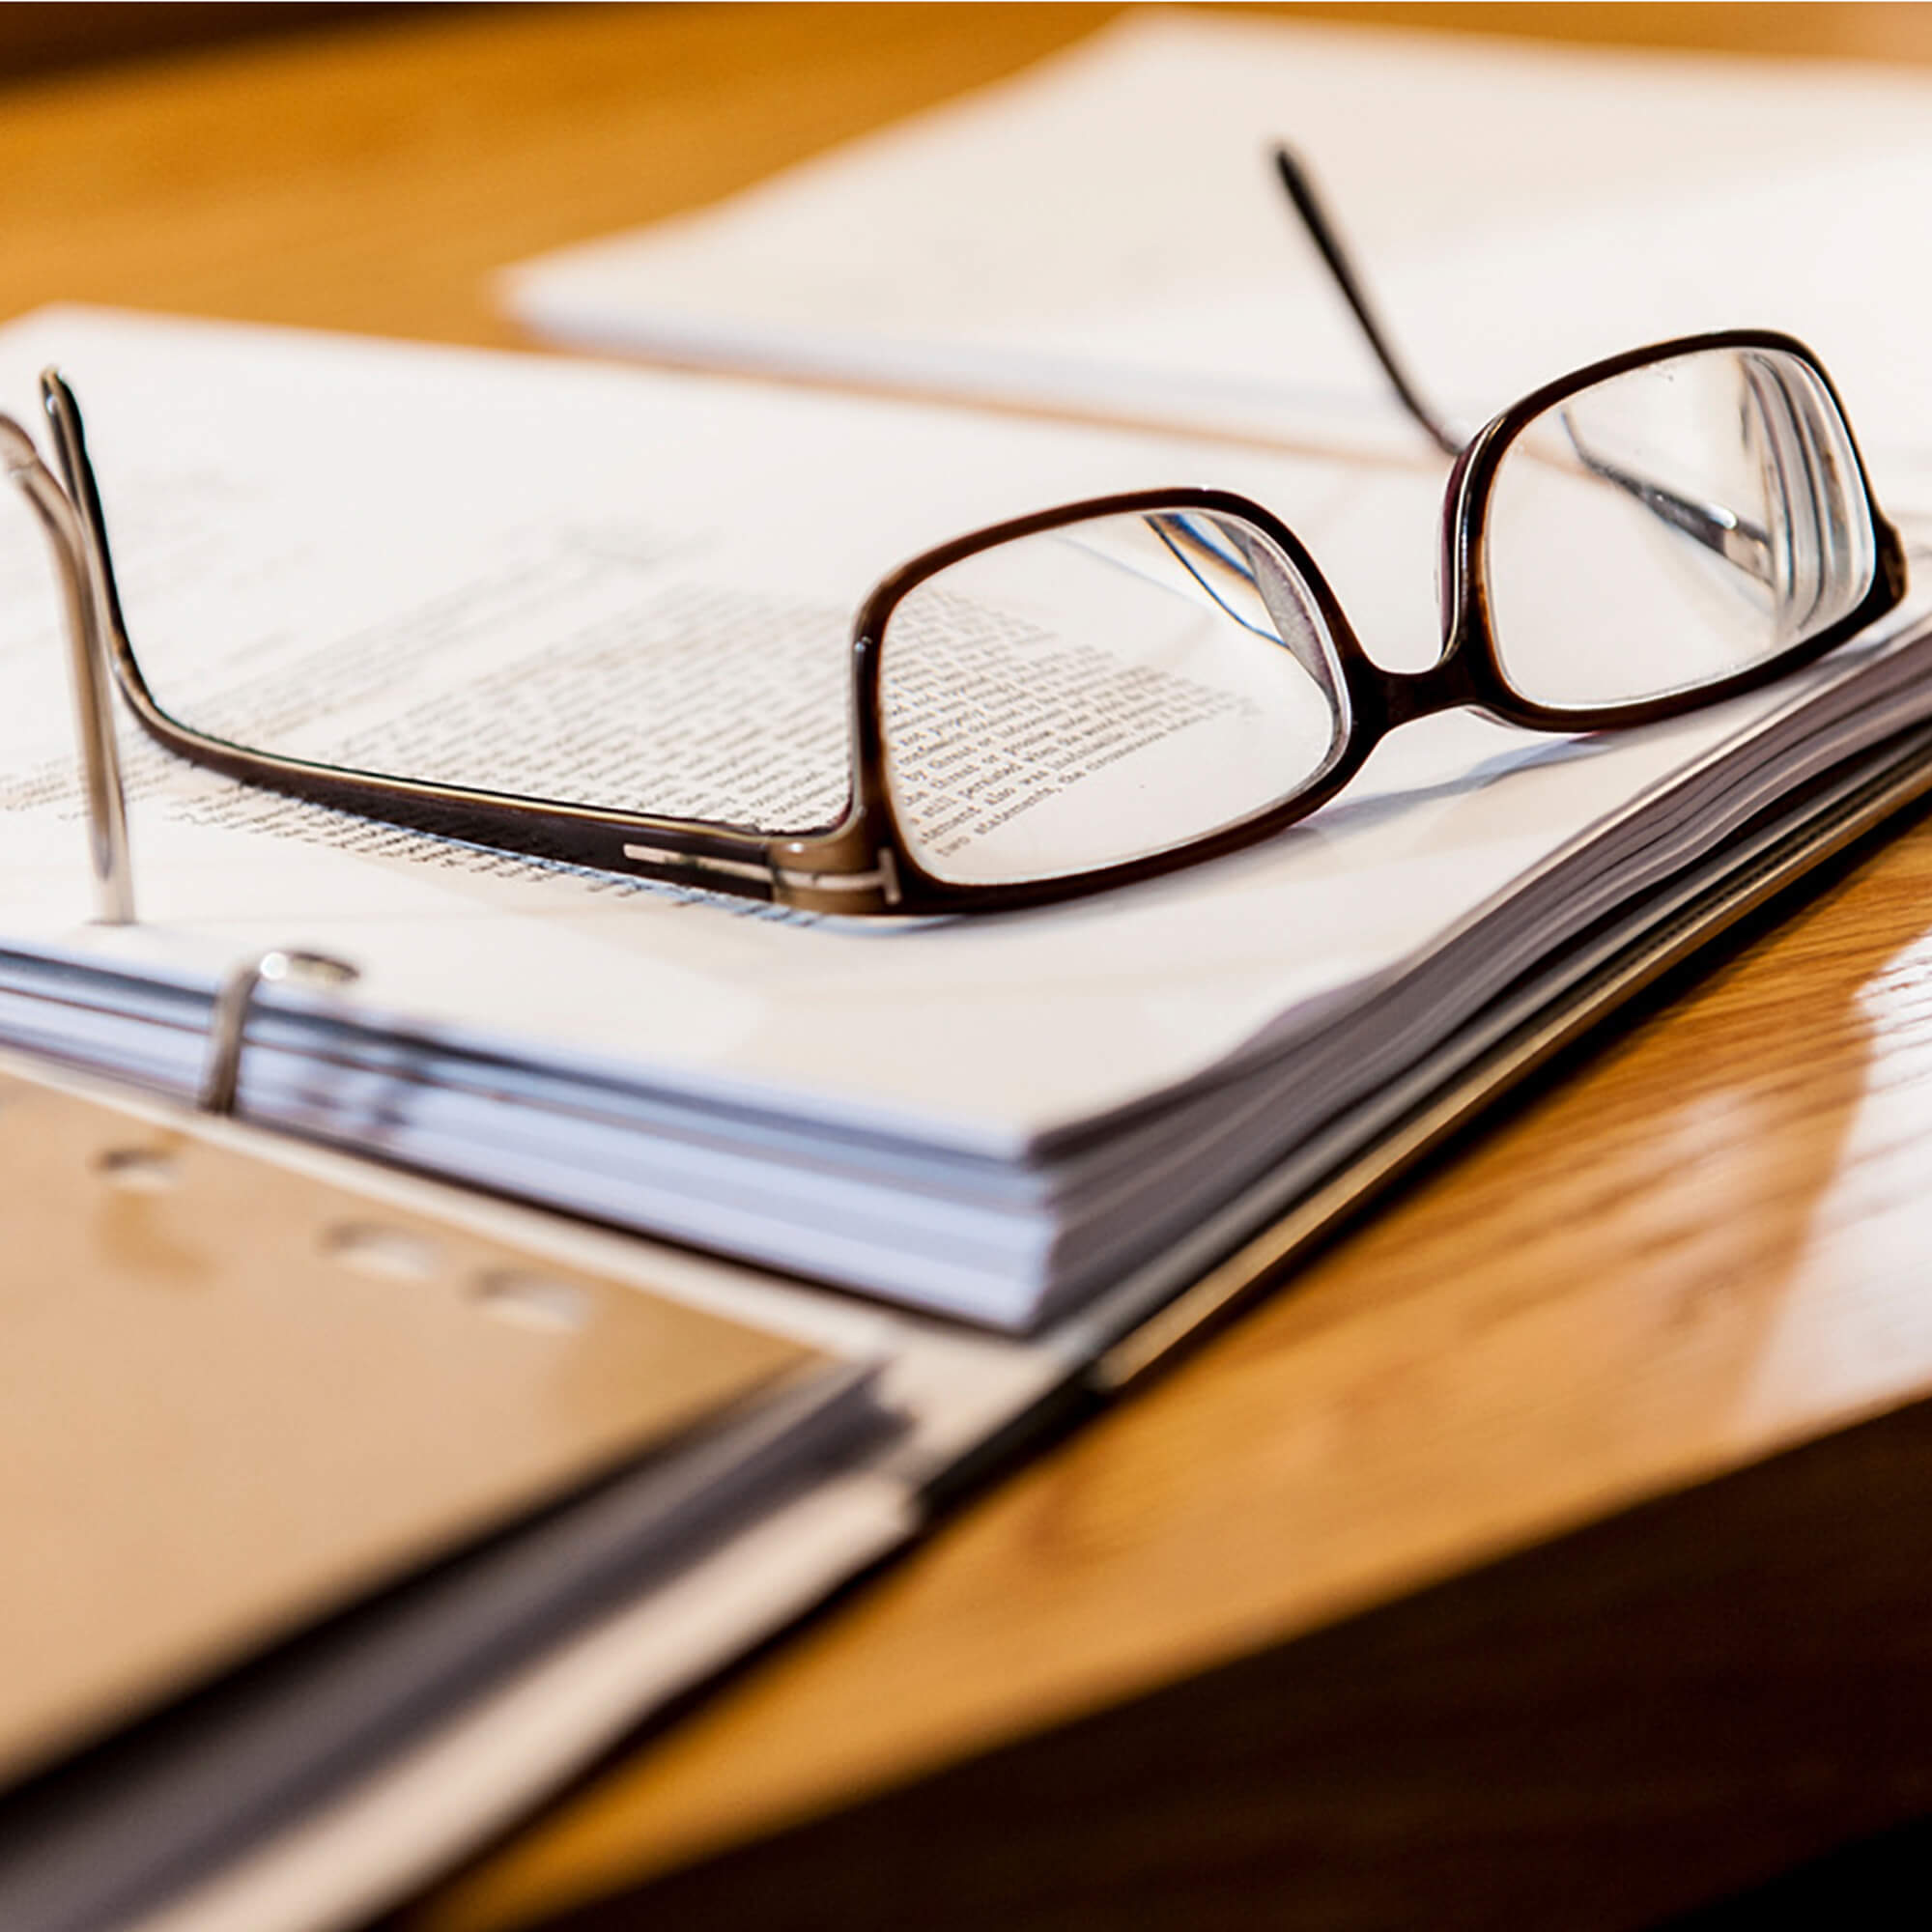 Pair of glasses positioned on an open notebook.